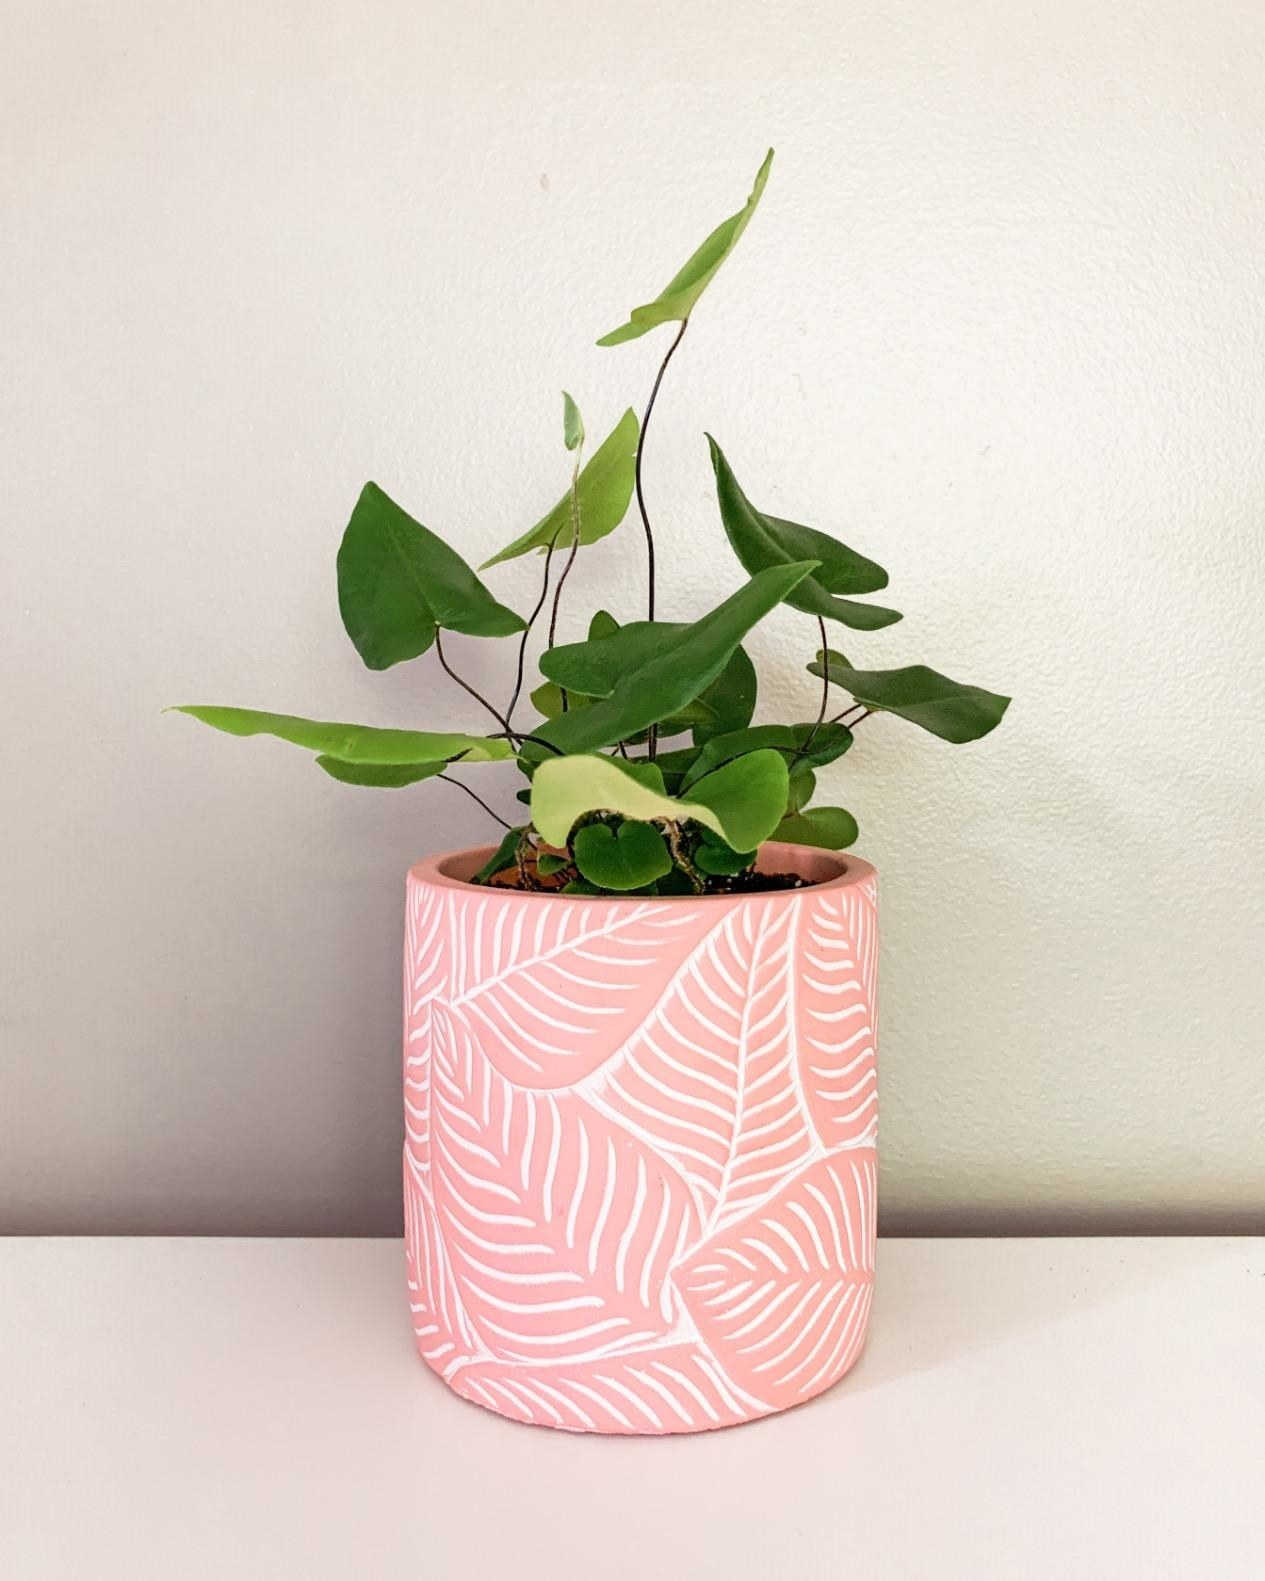 Reviewer's pink planter with etched leaves has a leafy plant in it